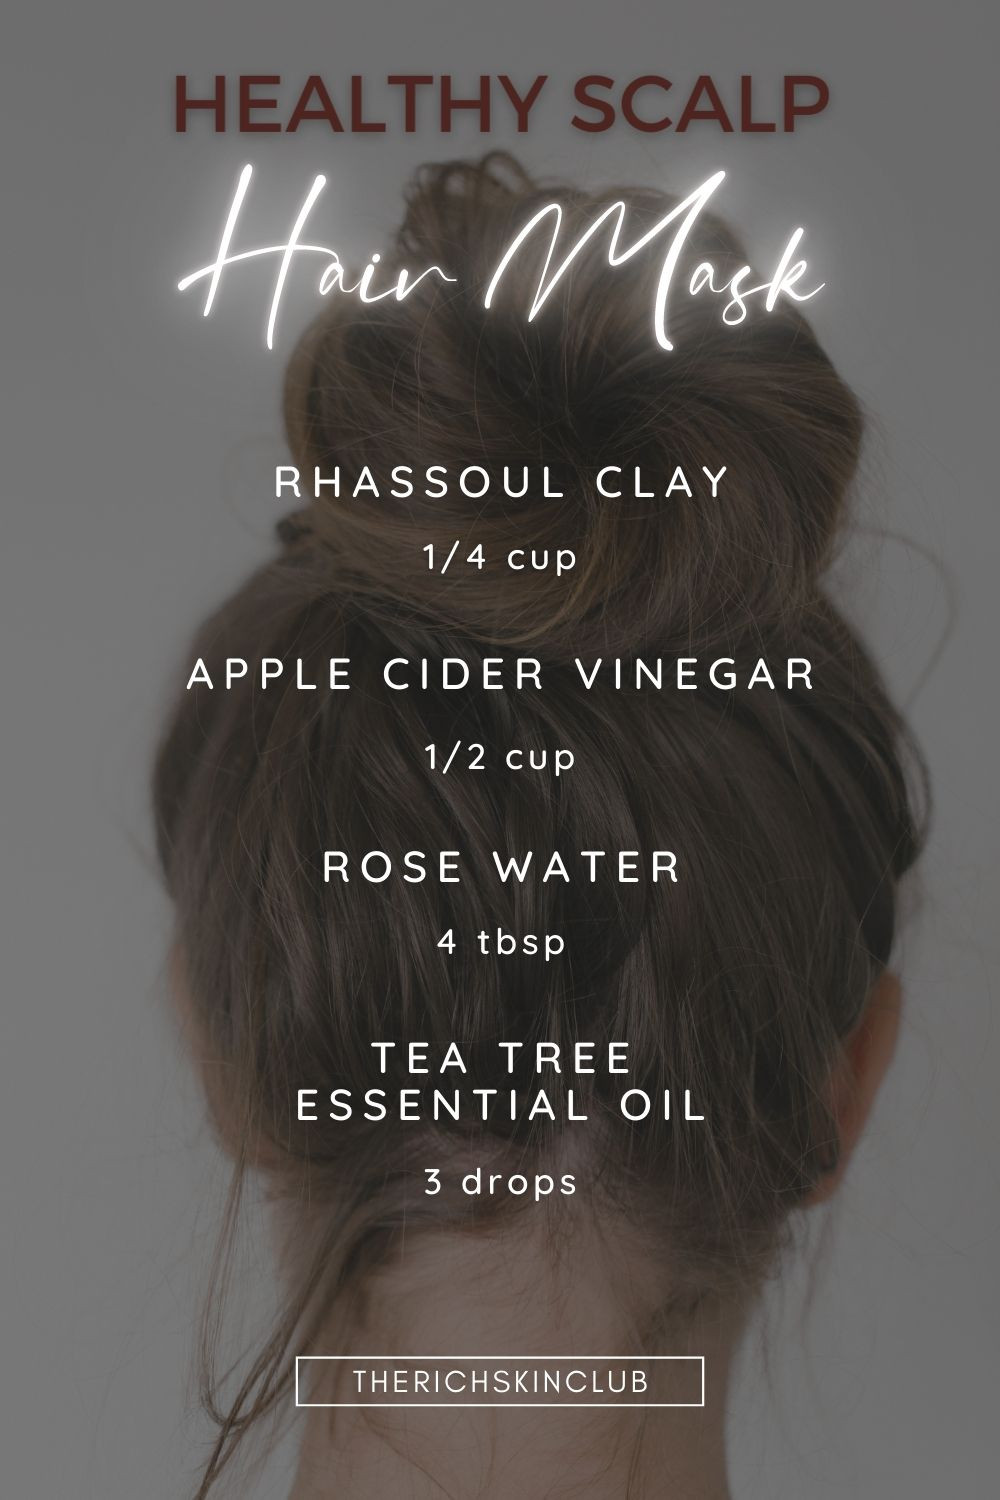 The Amazing Skin Benefits of Rassoul Clay For Hair And Scalp. Click the pin to get all of the facts on rassoul clay, bentonite clay, kaolin clay for detoxing your skin and scalp. Rassoul clay has an amazing ability to draw out toxins and impurities from the skin and scalp. Get a DIY clay hair mask recipe to add to your monthly hair treatment. #cleanbeauty #clayhairmaskdiy #hairandscalpmask #antitoxicantiaging